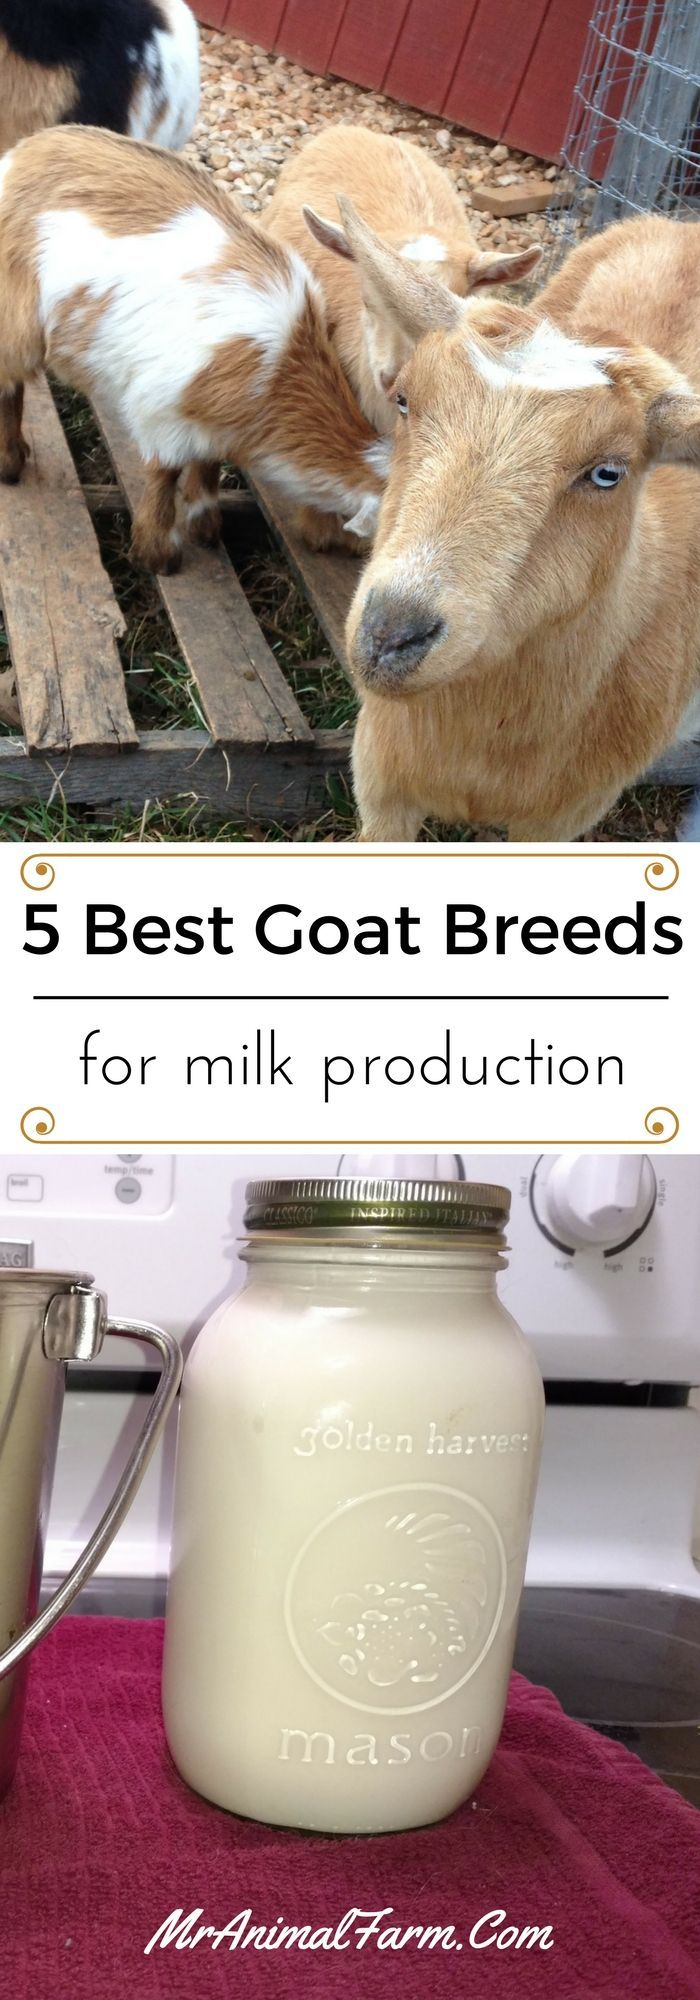 A Dairy Farm As A Technological System Teaching Practice: 5 Best Goat Breeds For Milk Production